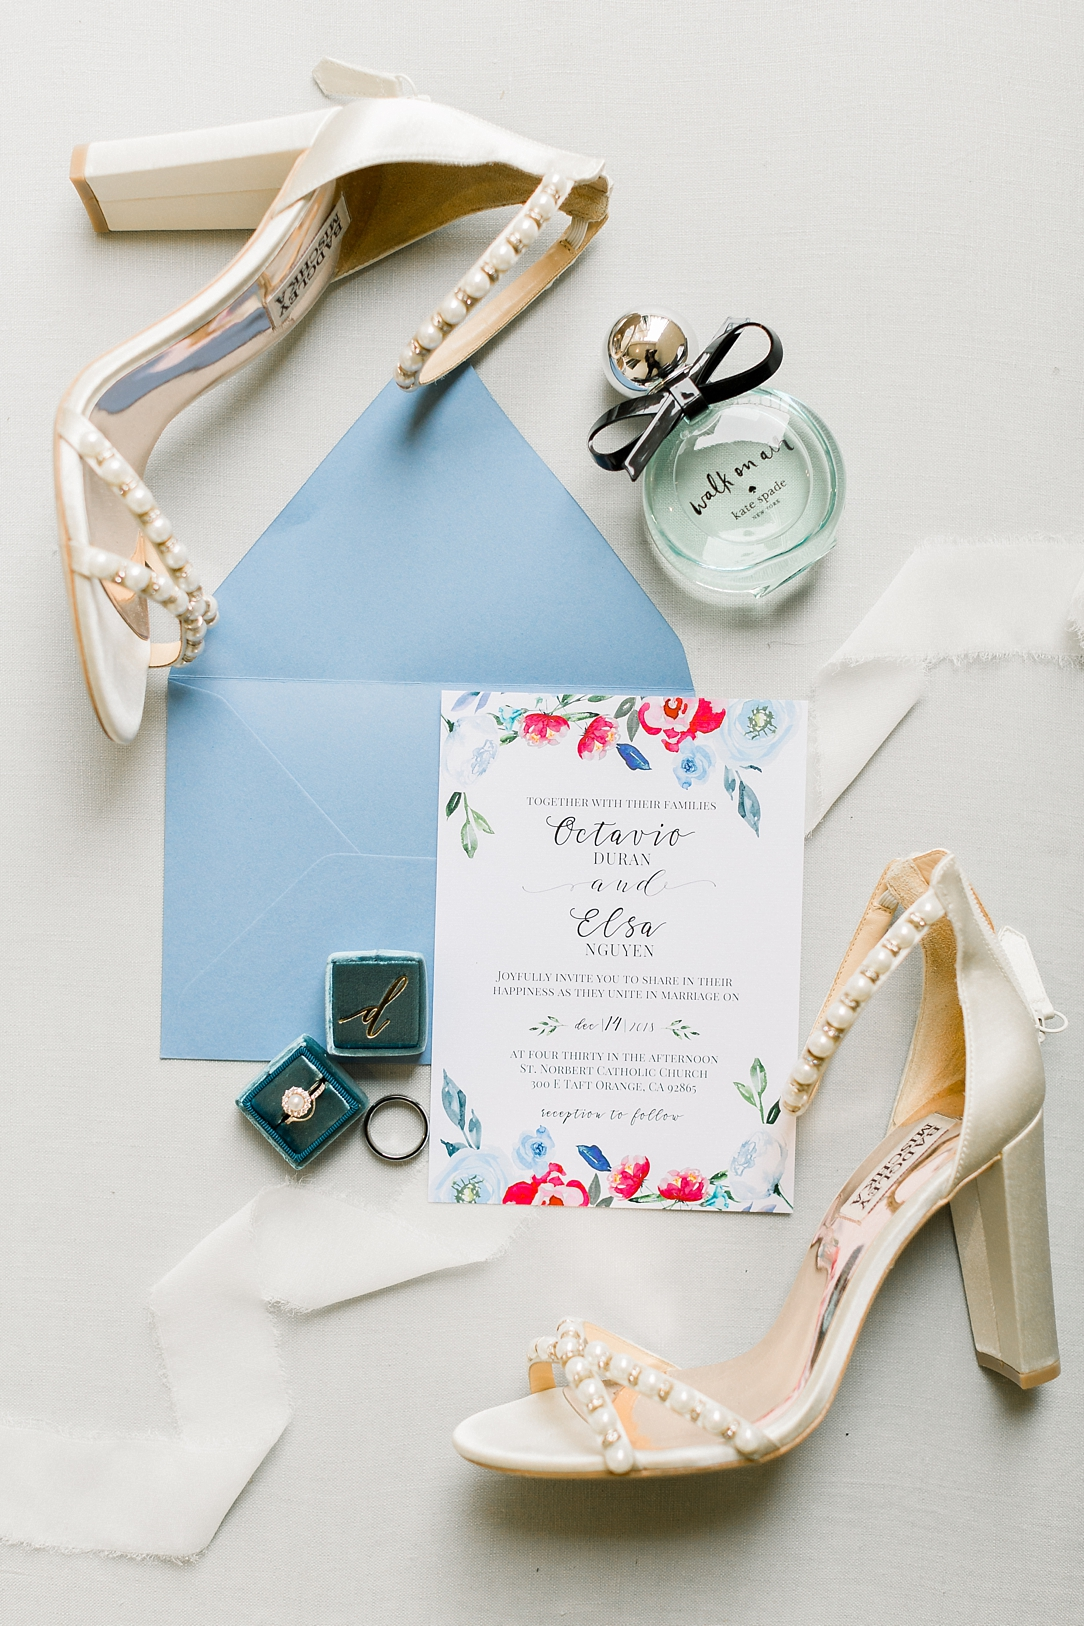 A Vintage Inspired Wedding At Santiago Oaks Regional Park And The Vintage Rose By Natural Light Photographer Madison Ellis Photography. (11)